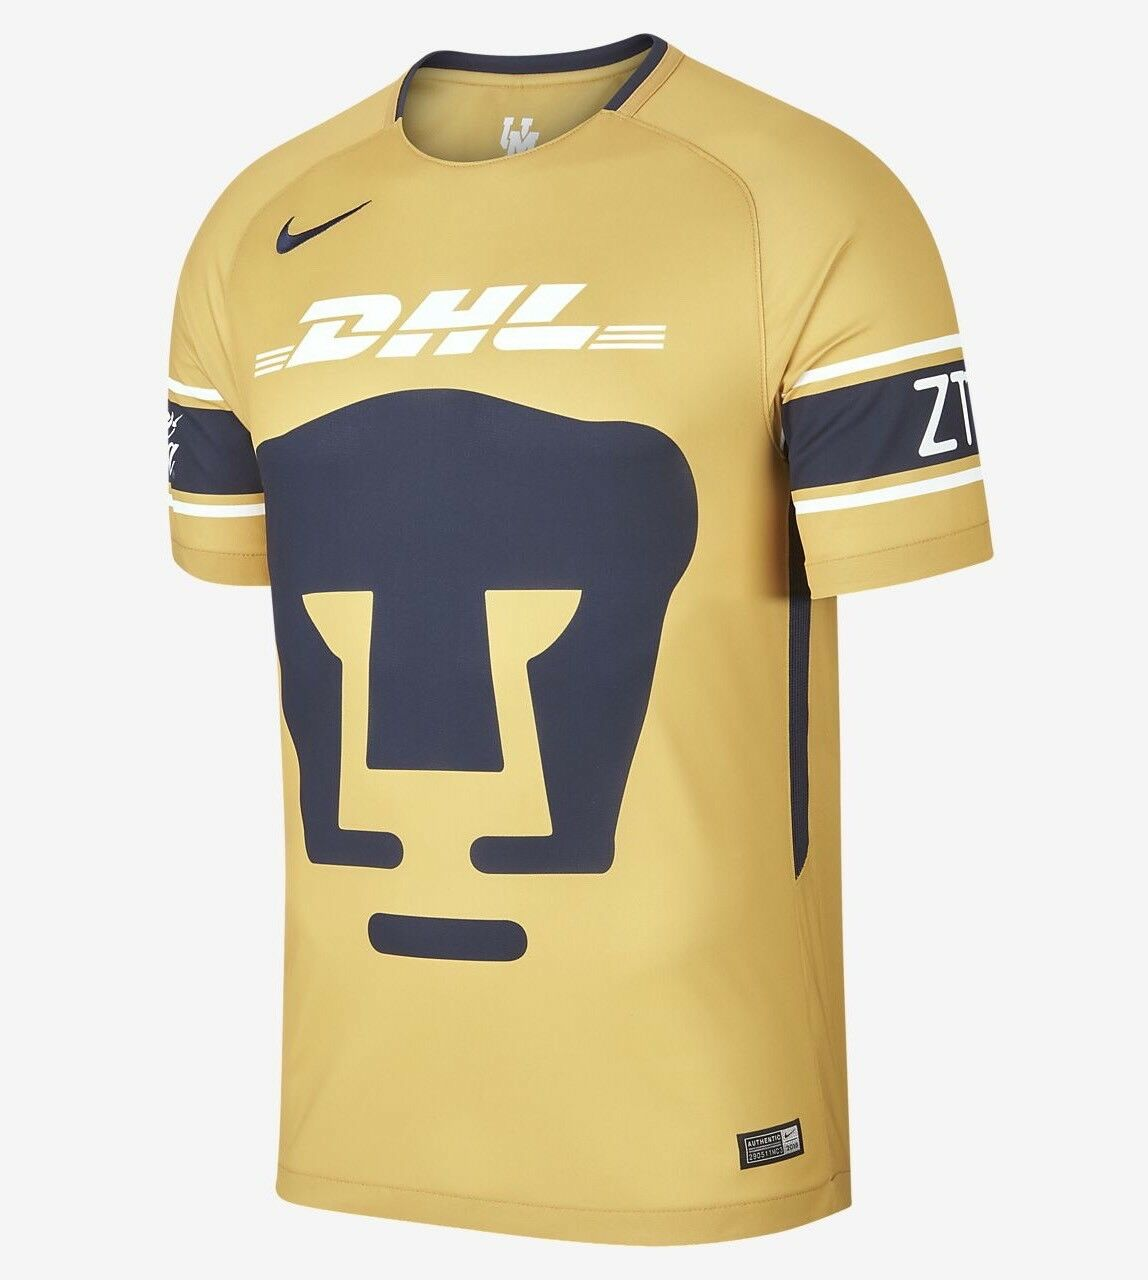 2018 19 A.C. Pumas Stadium Third Men's Football Shirt 847310-711 gold Size M New